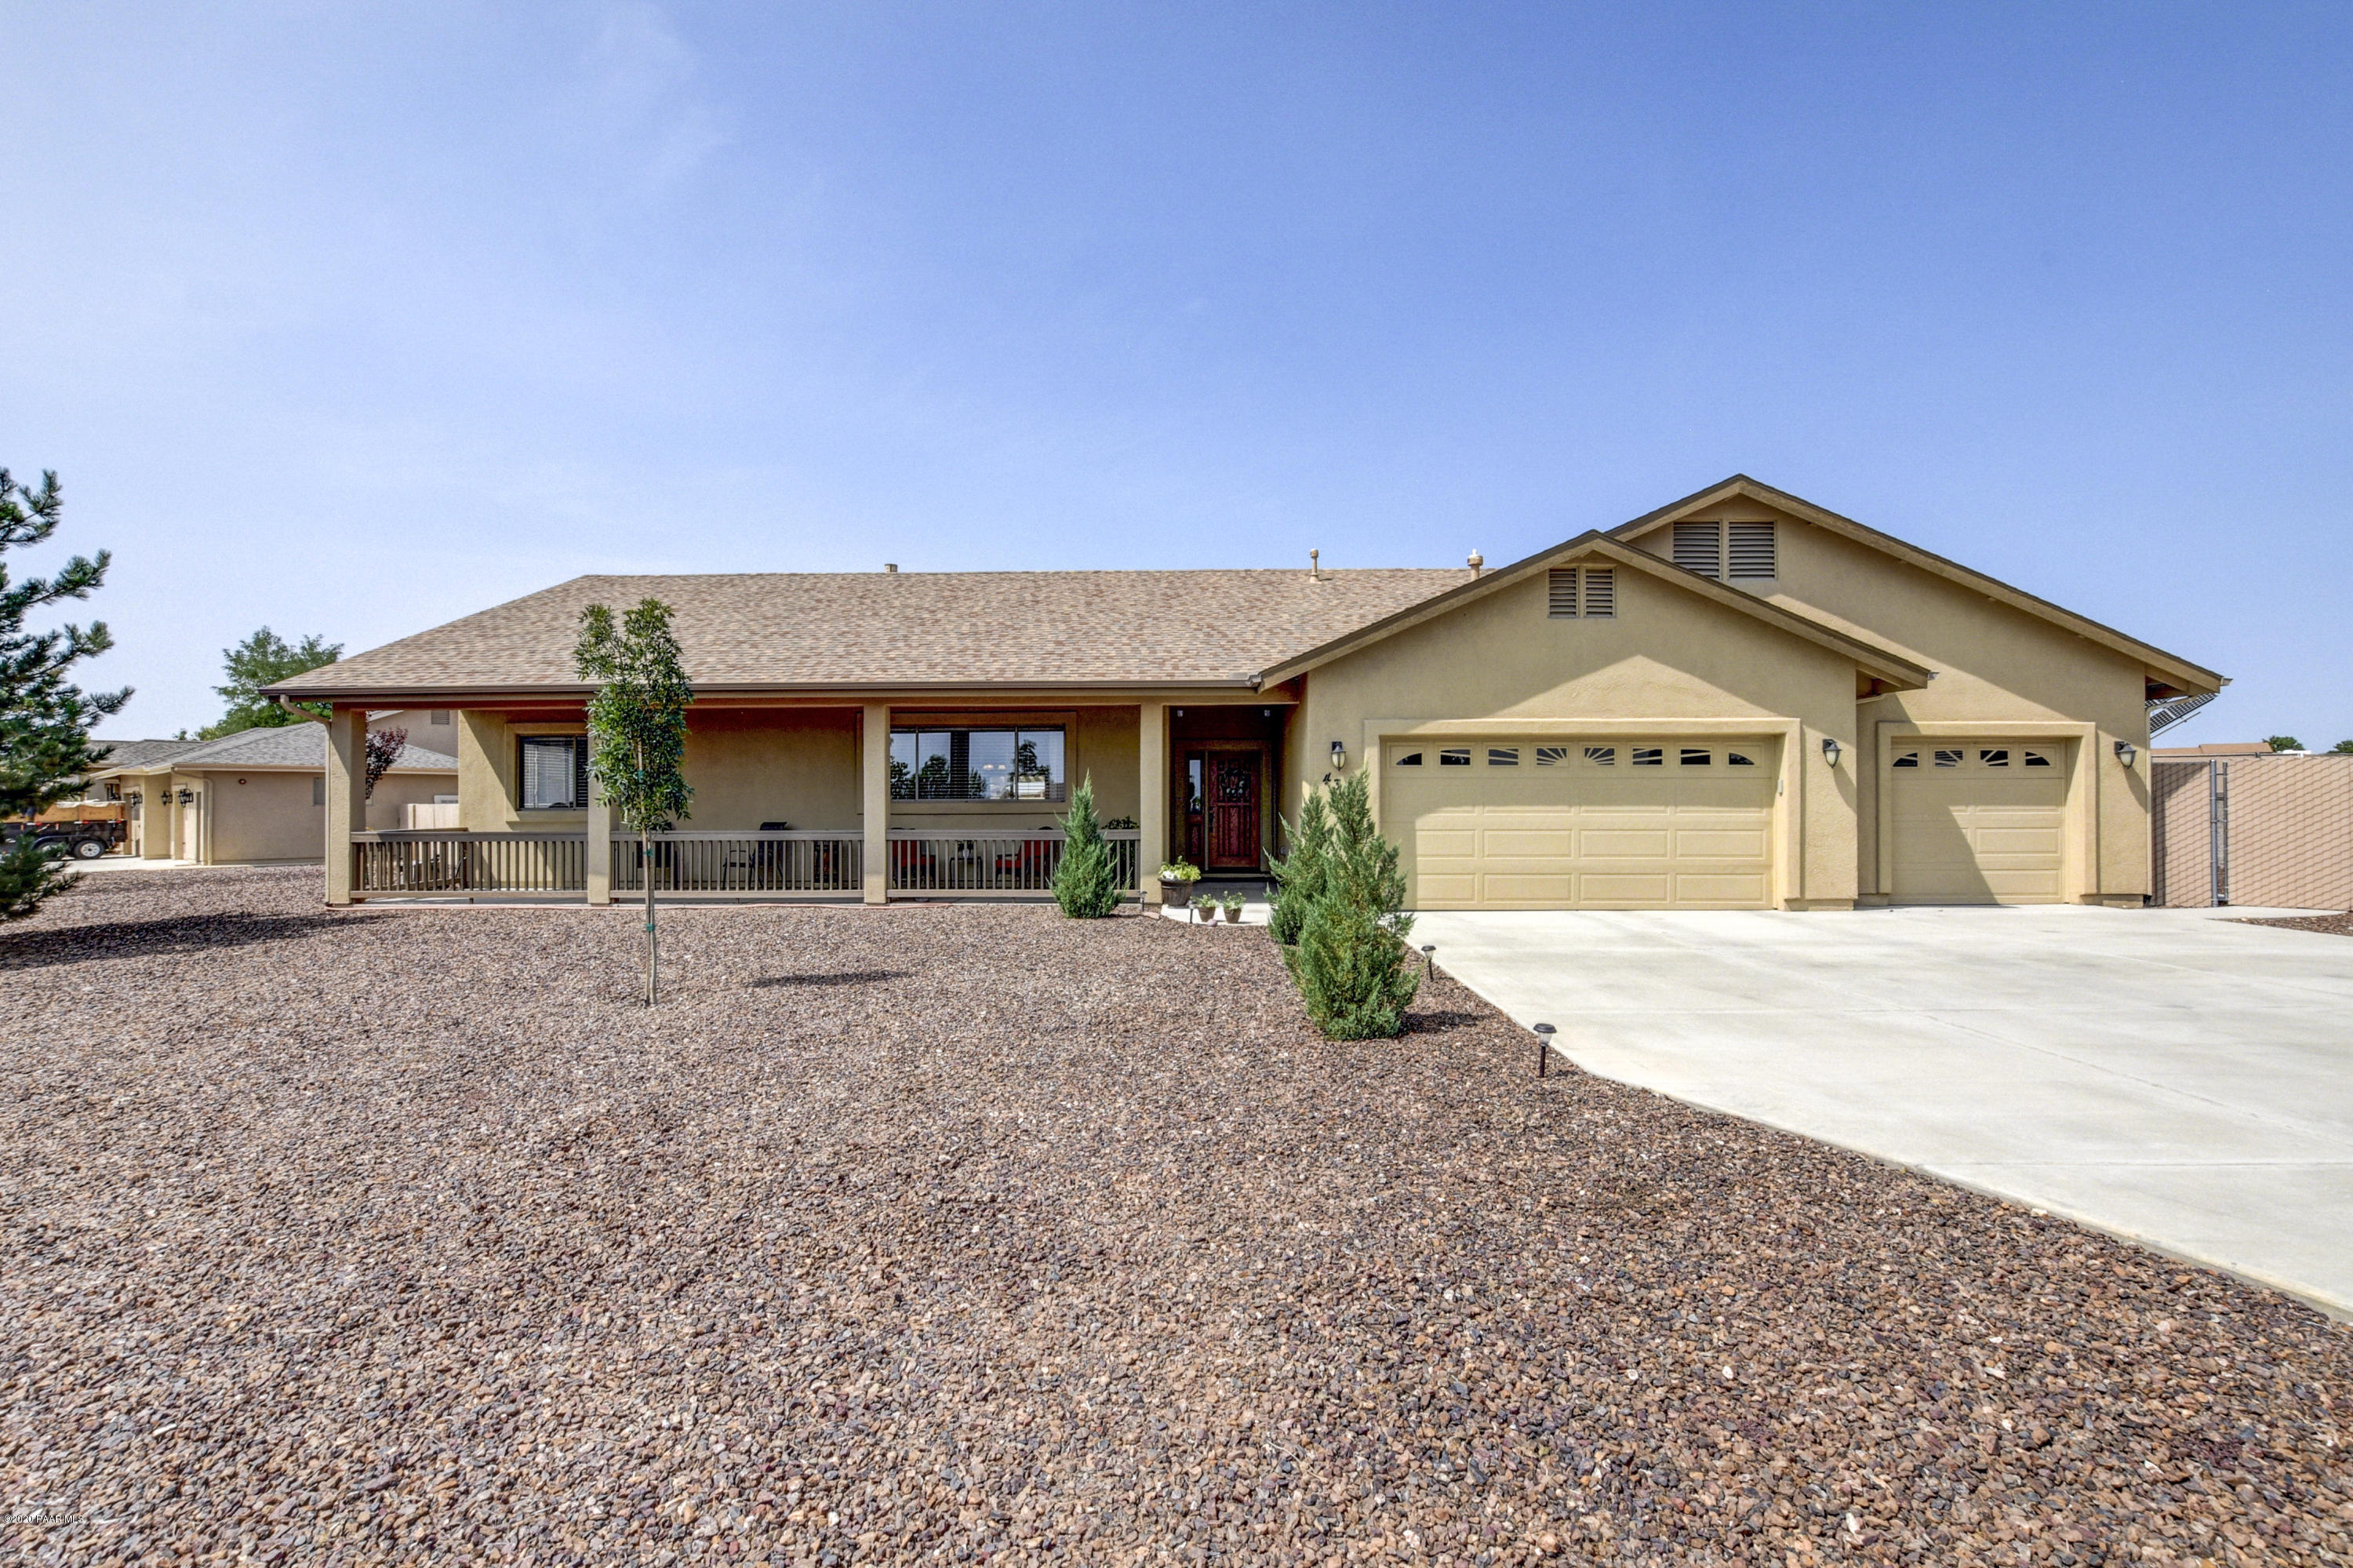 Photo of 430 Lauren, Chino Valley, AZ 86323